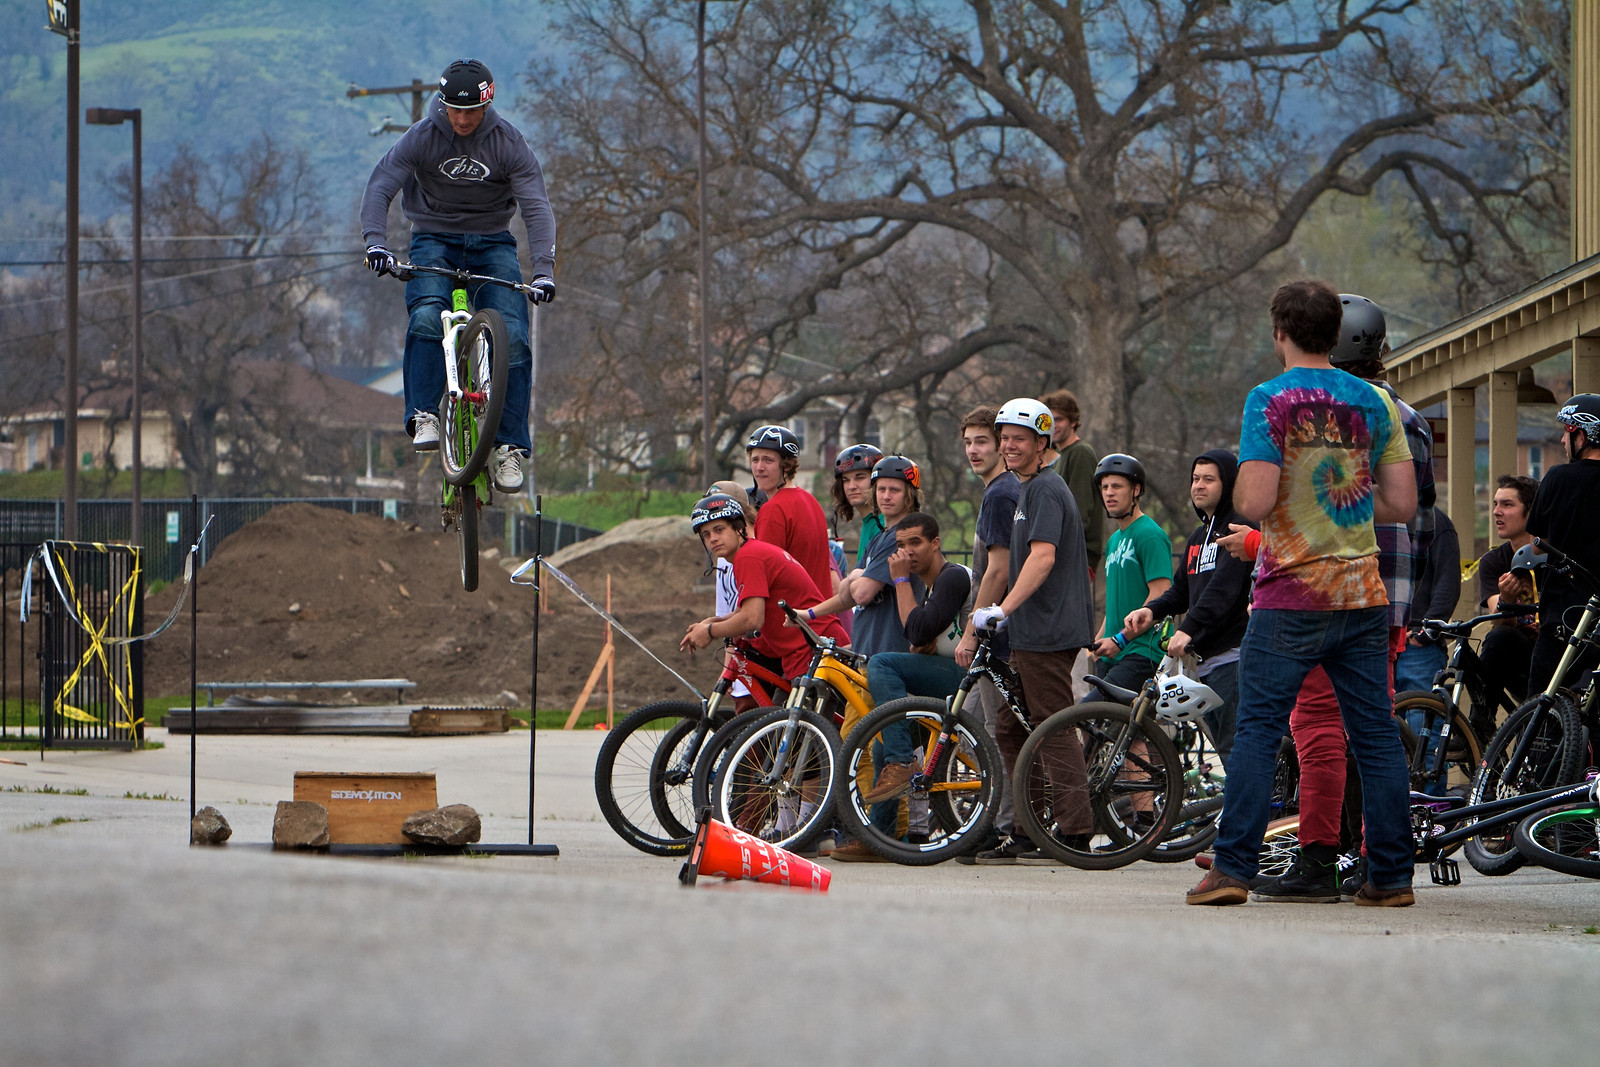 Brian Lopes Super Session Long Jump contest - corytepper.com - Mountain Biking Pictures - Vital MTB